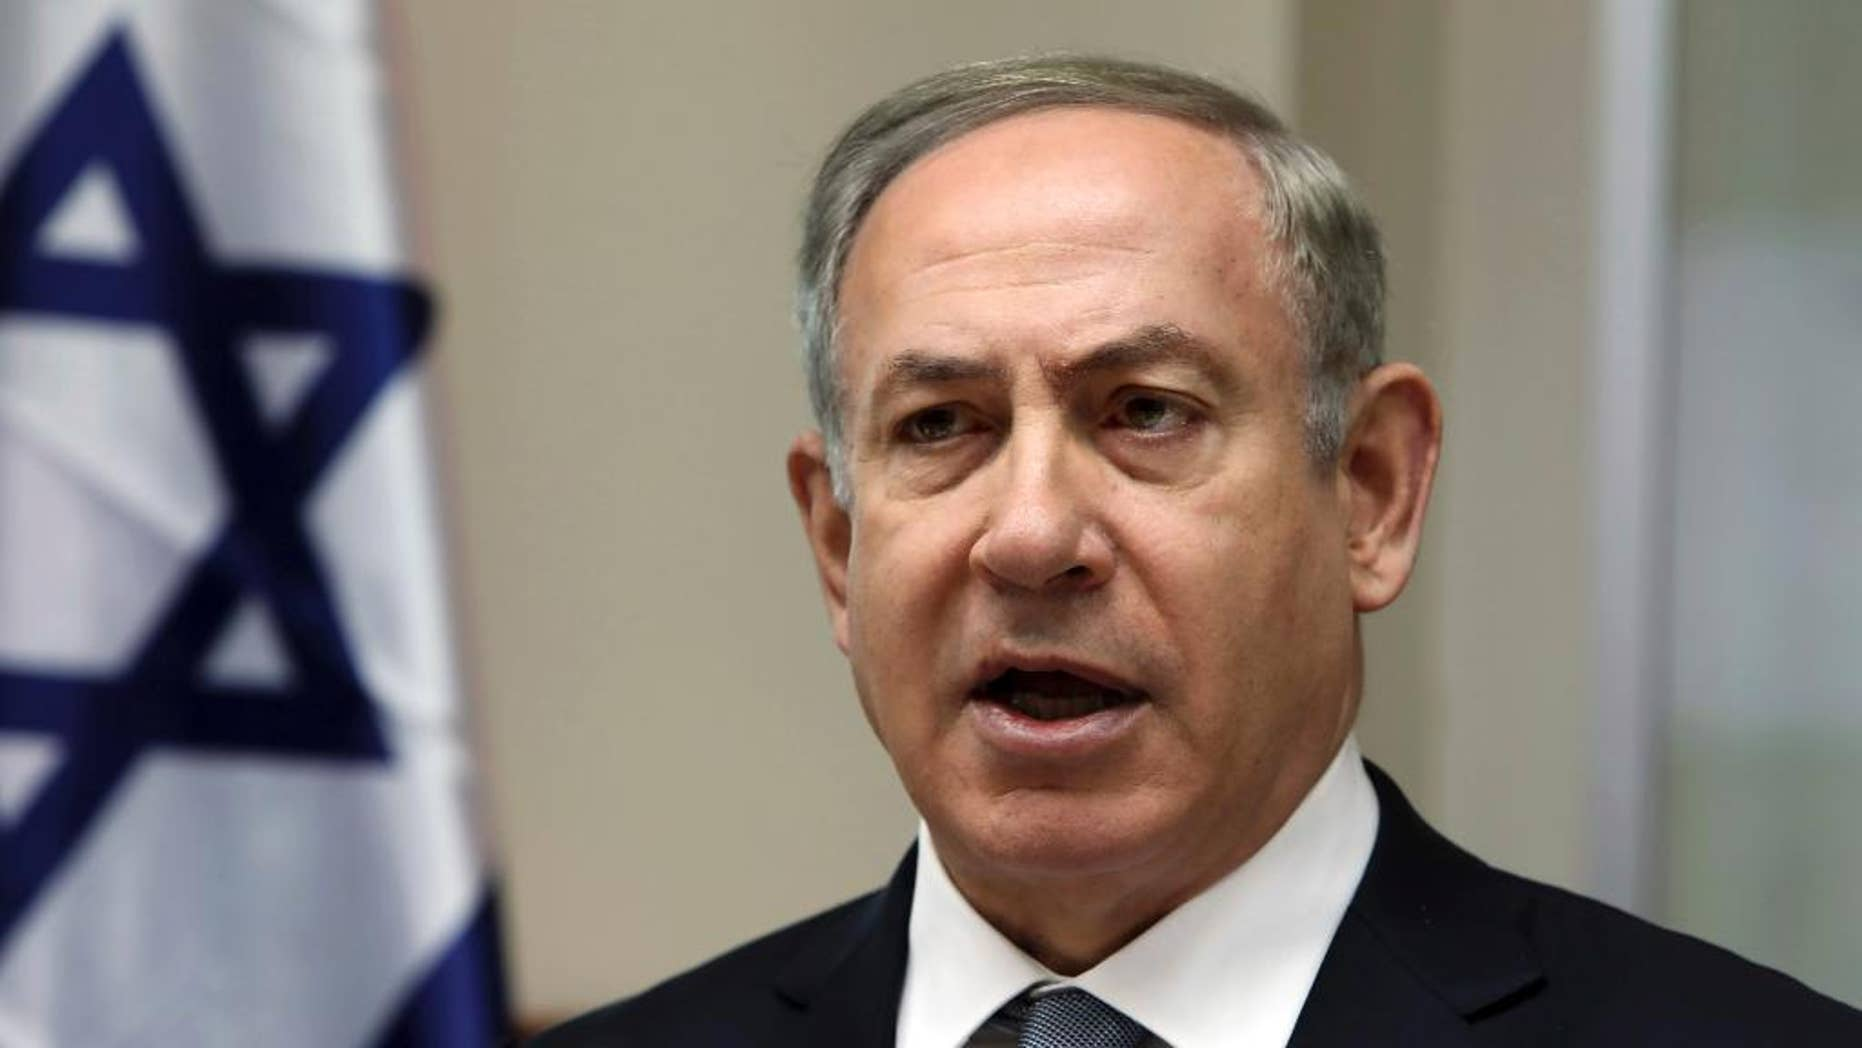 FILE - In this Sunday, Feb. 12, 2017 file photo, Israeli Prime Minister Benjamin Netanyahu chairs the weekly cabinet meeting in Jerusalem. As Netanyahu visits the White House, the Trump administration has suggested that peace between the Israelis and Palestinians may not come in the form of a two-state solution — a position that could represent a dramatic shift from 20 years of U.S. policy. Speaking to reporters ahead of President Donald Trump's meeting Wednesday with Netanyahu, a senior White House official said Tuesday, Feb. 14, 2017, that Trump is eager to begin facilitating a peace deal between the two sides and hoping to bring them together soon. (Gali Tibbon, Pool via AP, File)